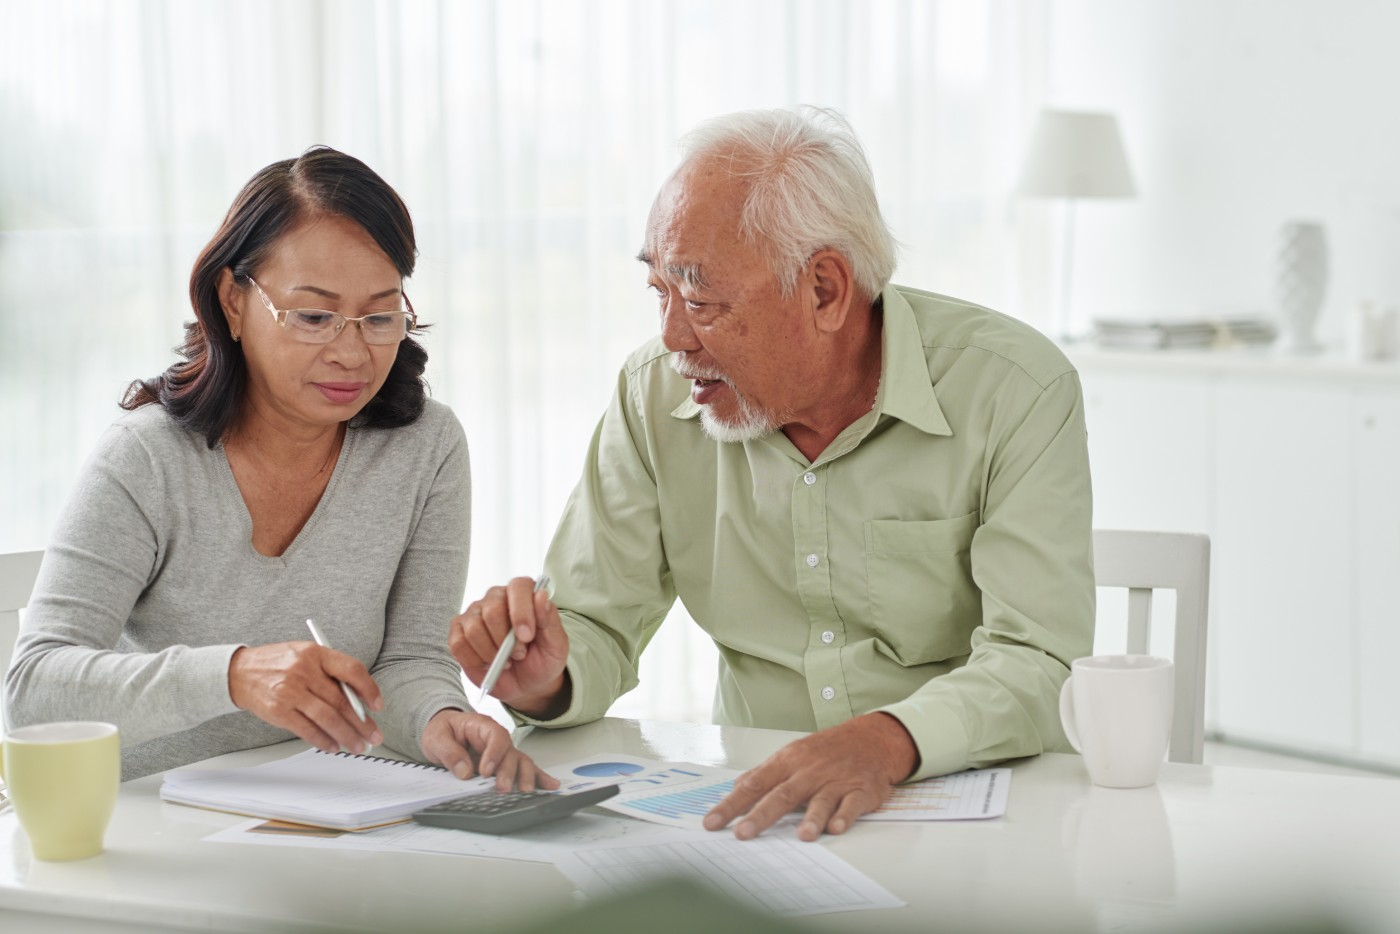 https://tickertapecdn.tdameritrade.com/assets/images/pages/md/Seniors filling out tax forms